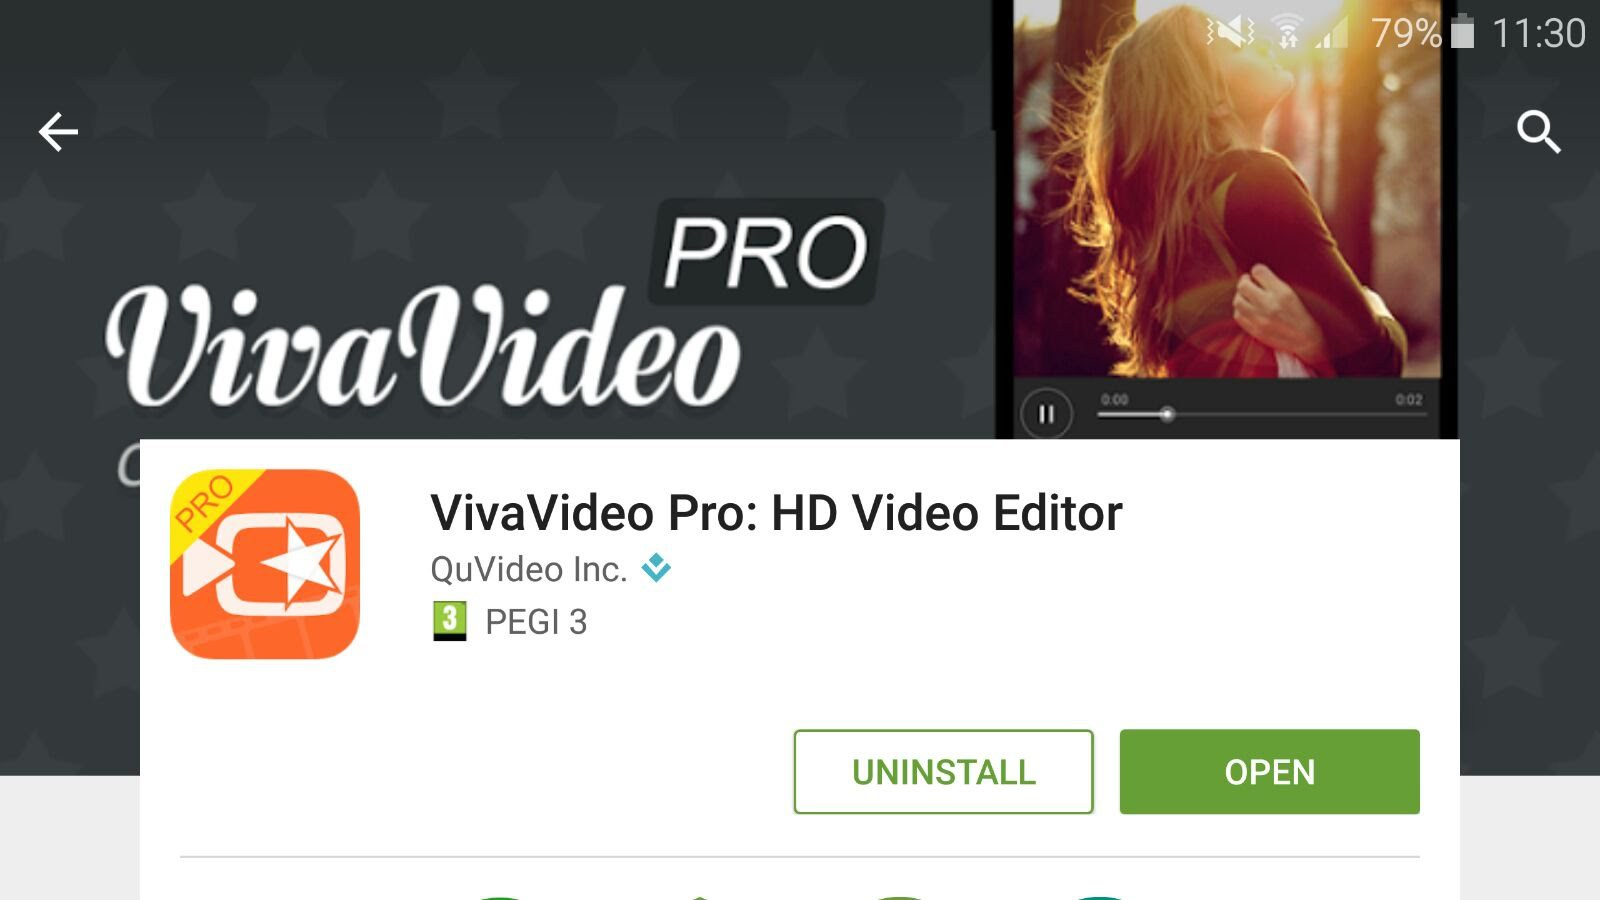 Viva-Video-Pro-Editor-App-with-Free-APK-Download | intHow